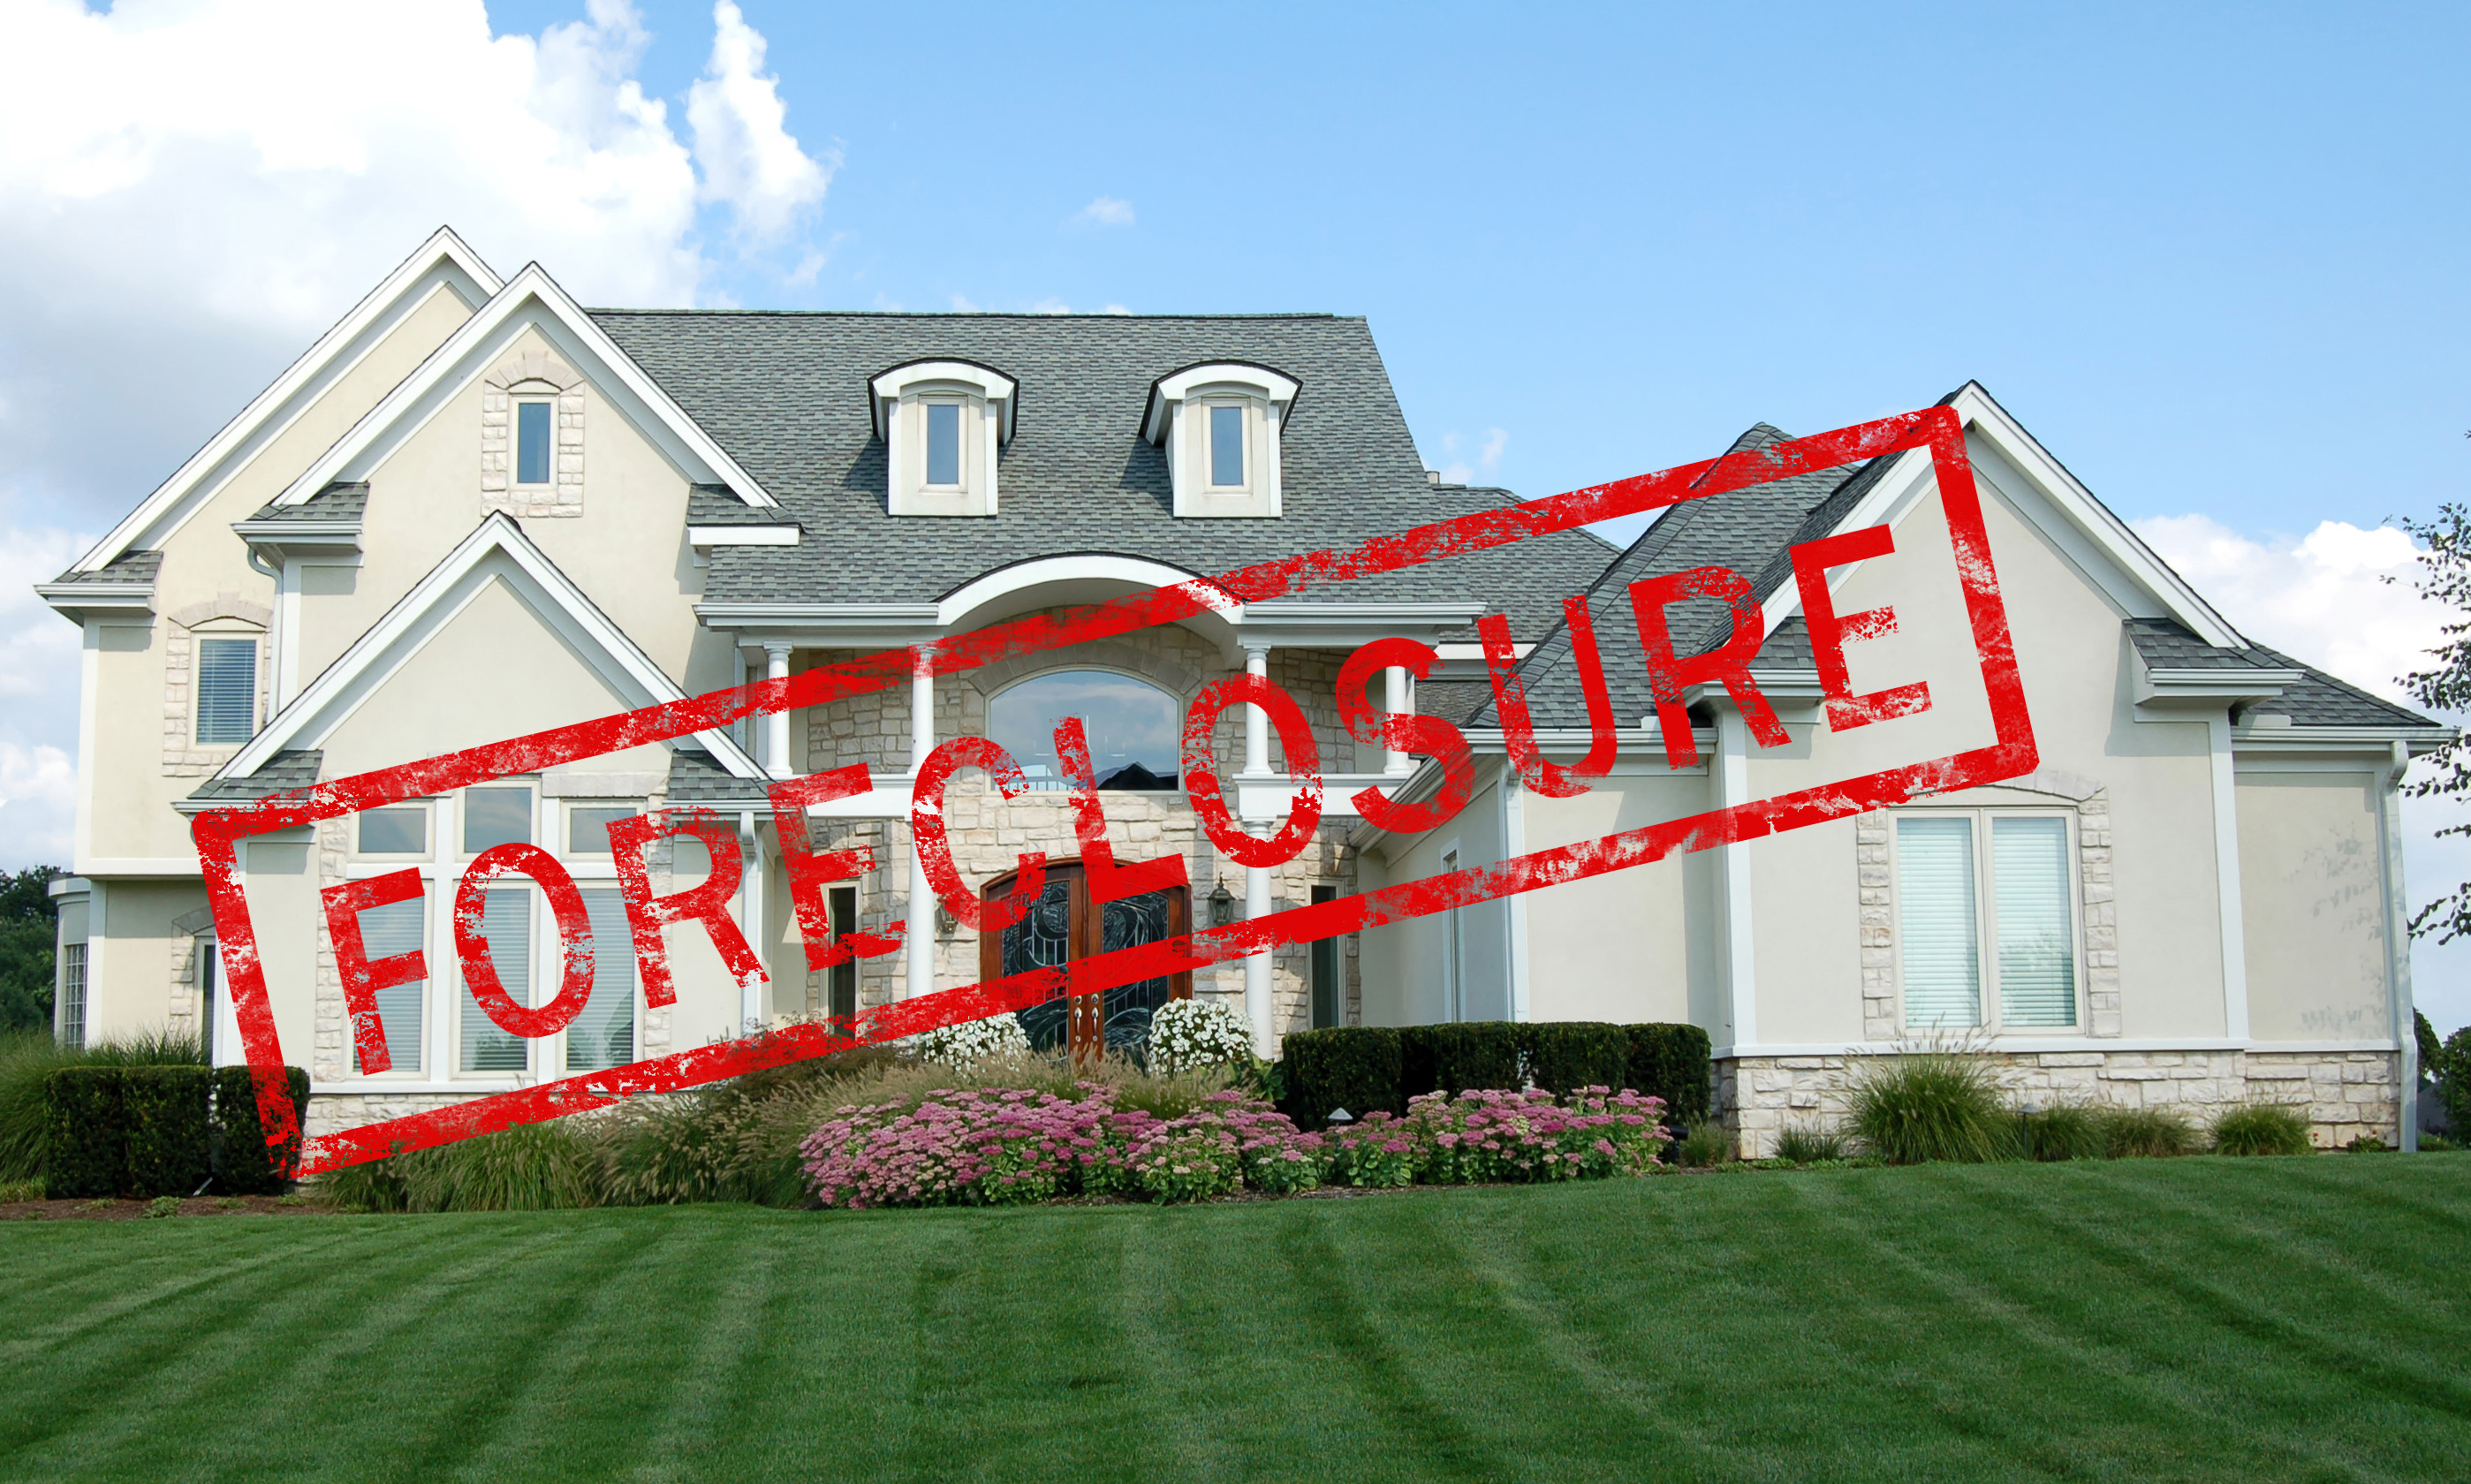 Call Watson Appraisal Services, Inc to discuss valuations regarding Wake foreclosures